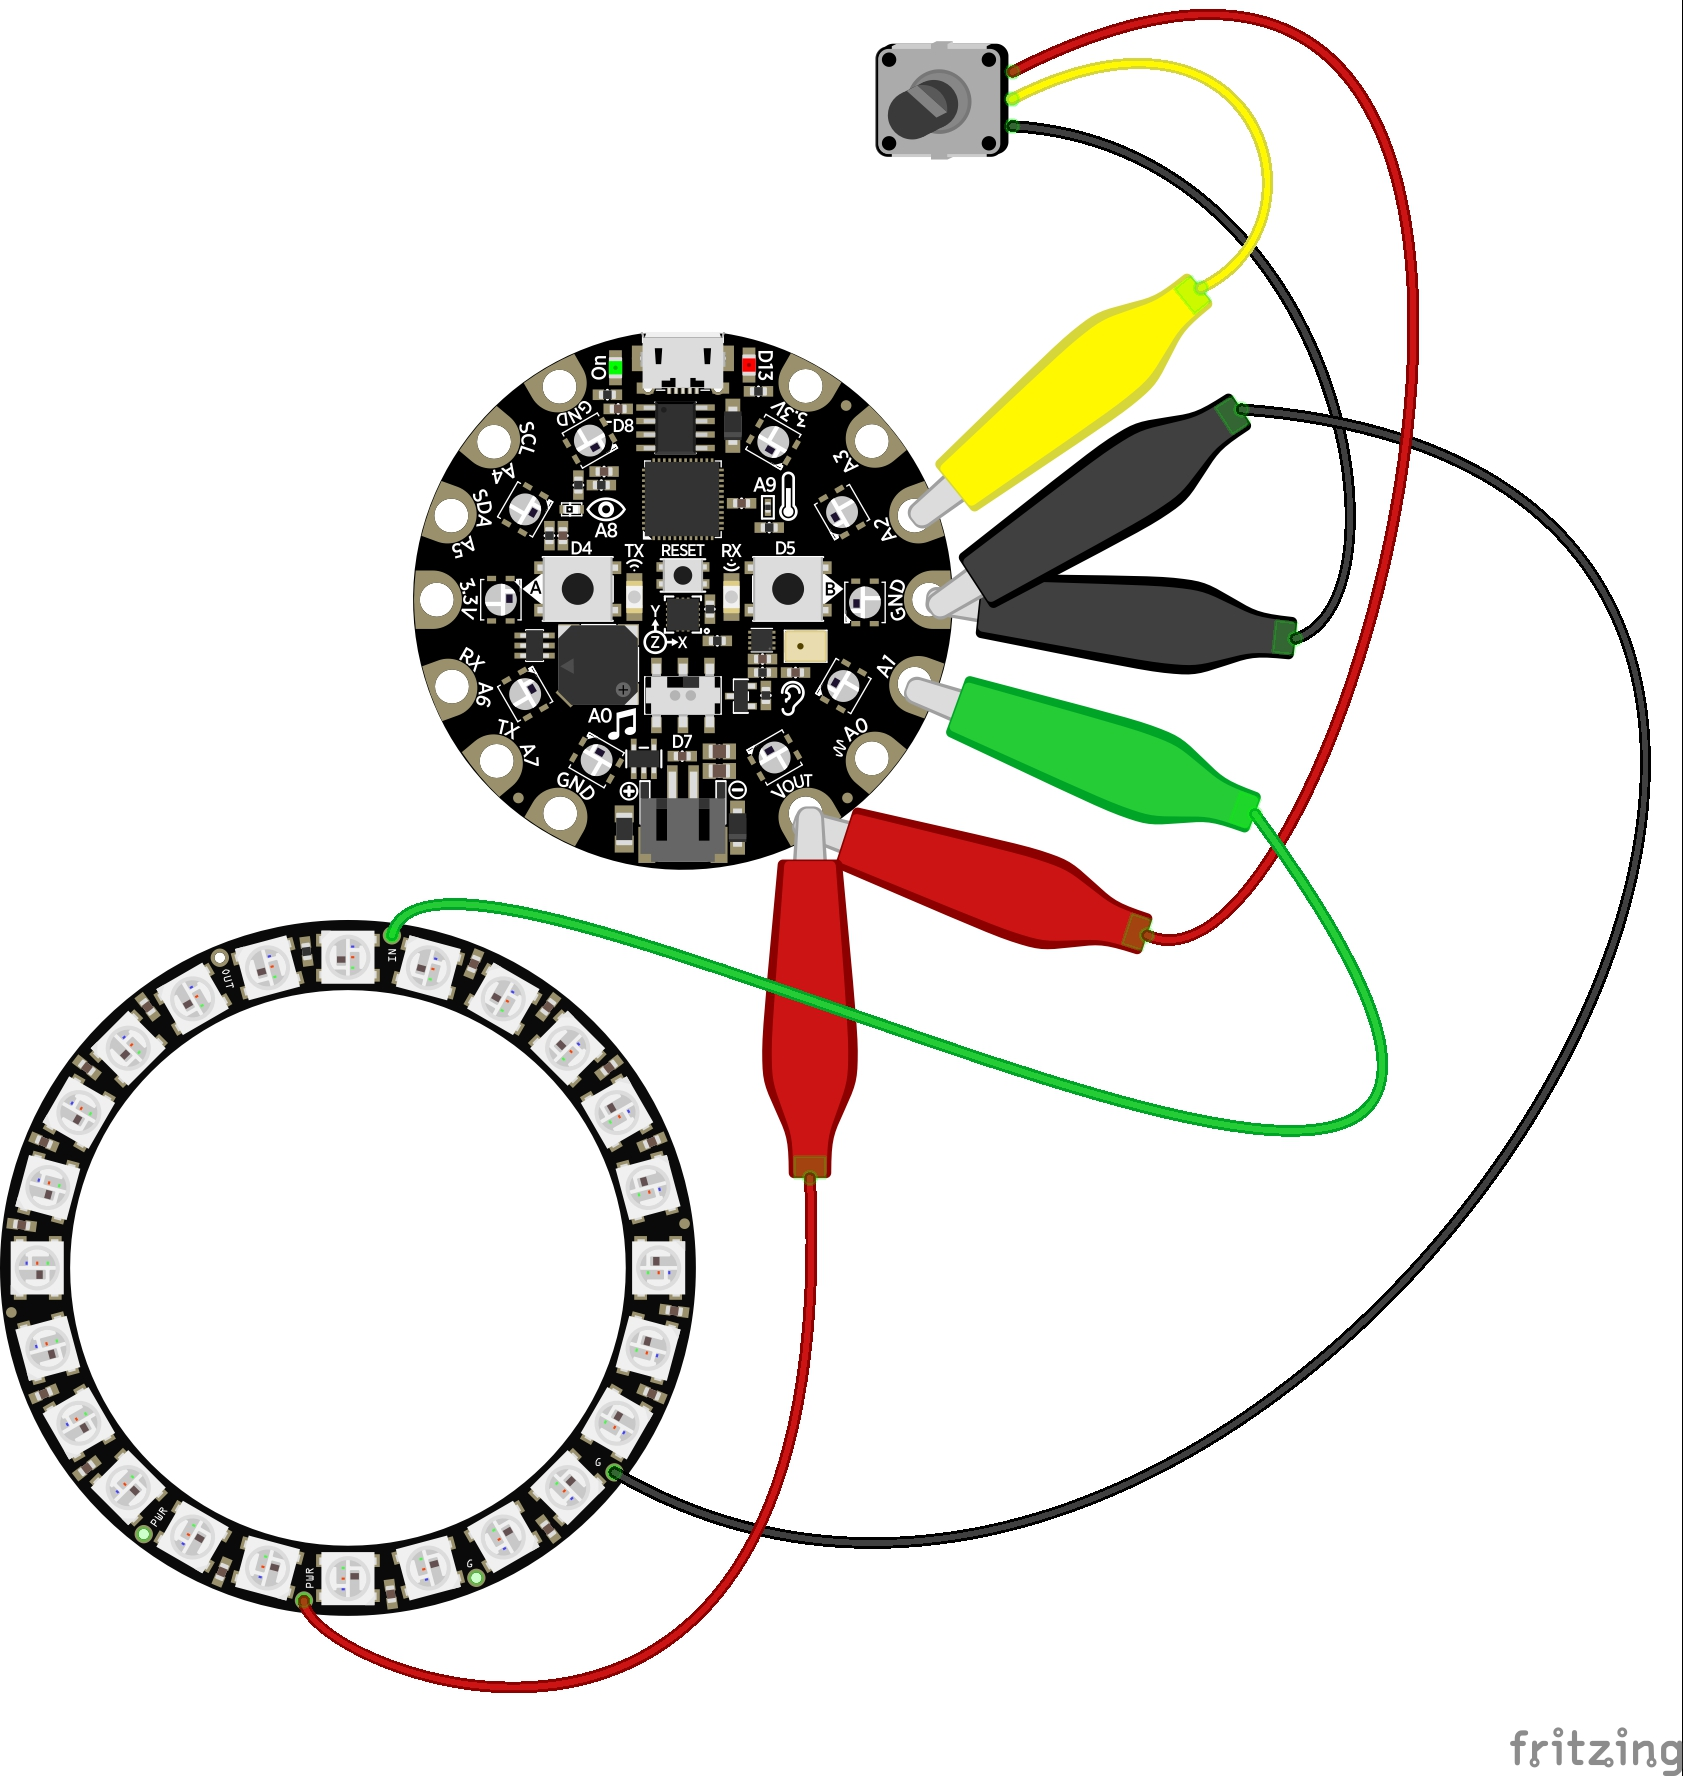 makecode_CPX_neopixel-ring_potentiometer_bb.jpg